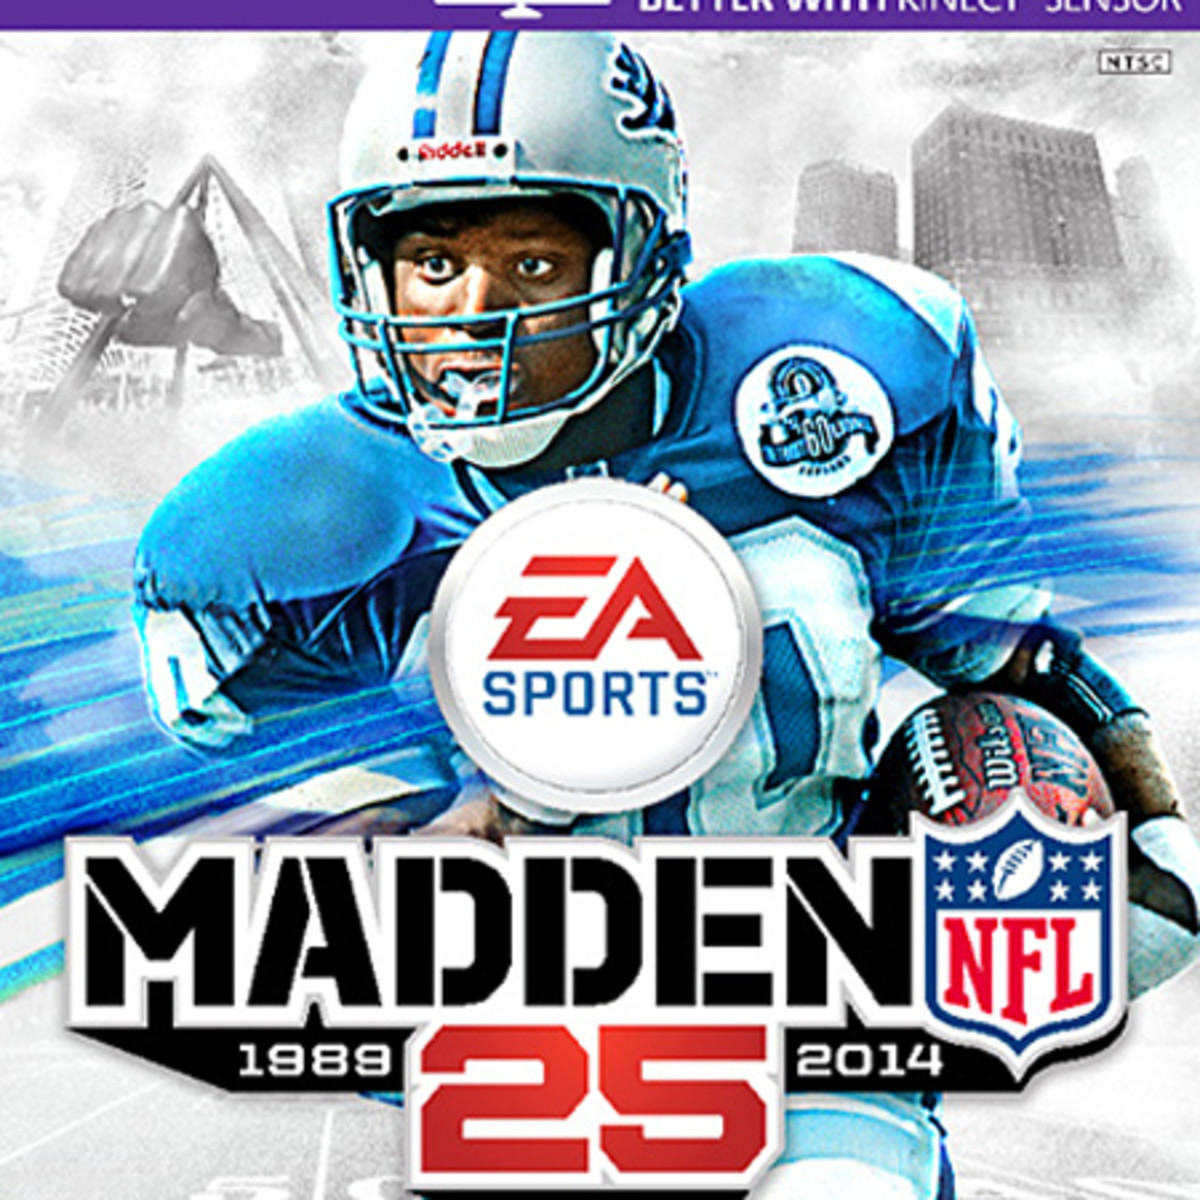 barry-sanders-madden-25-cover.jpg